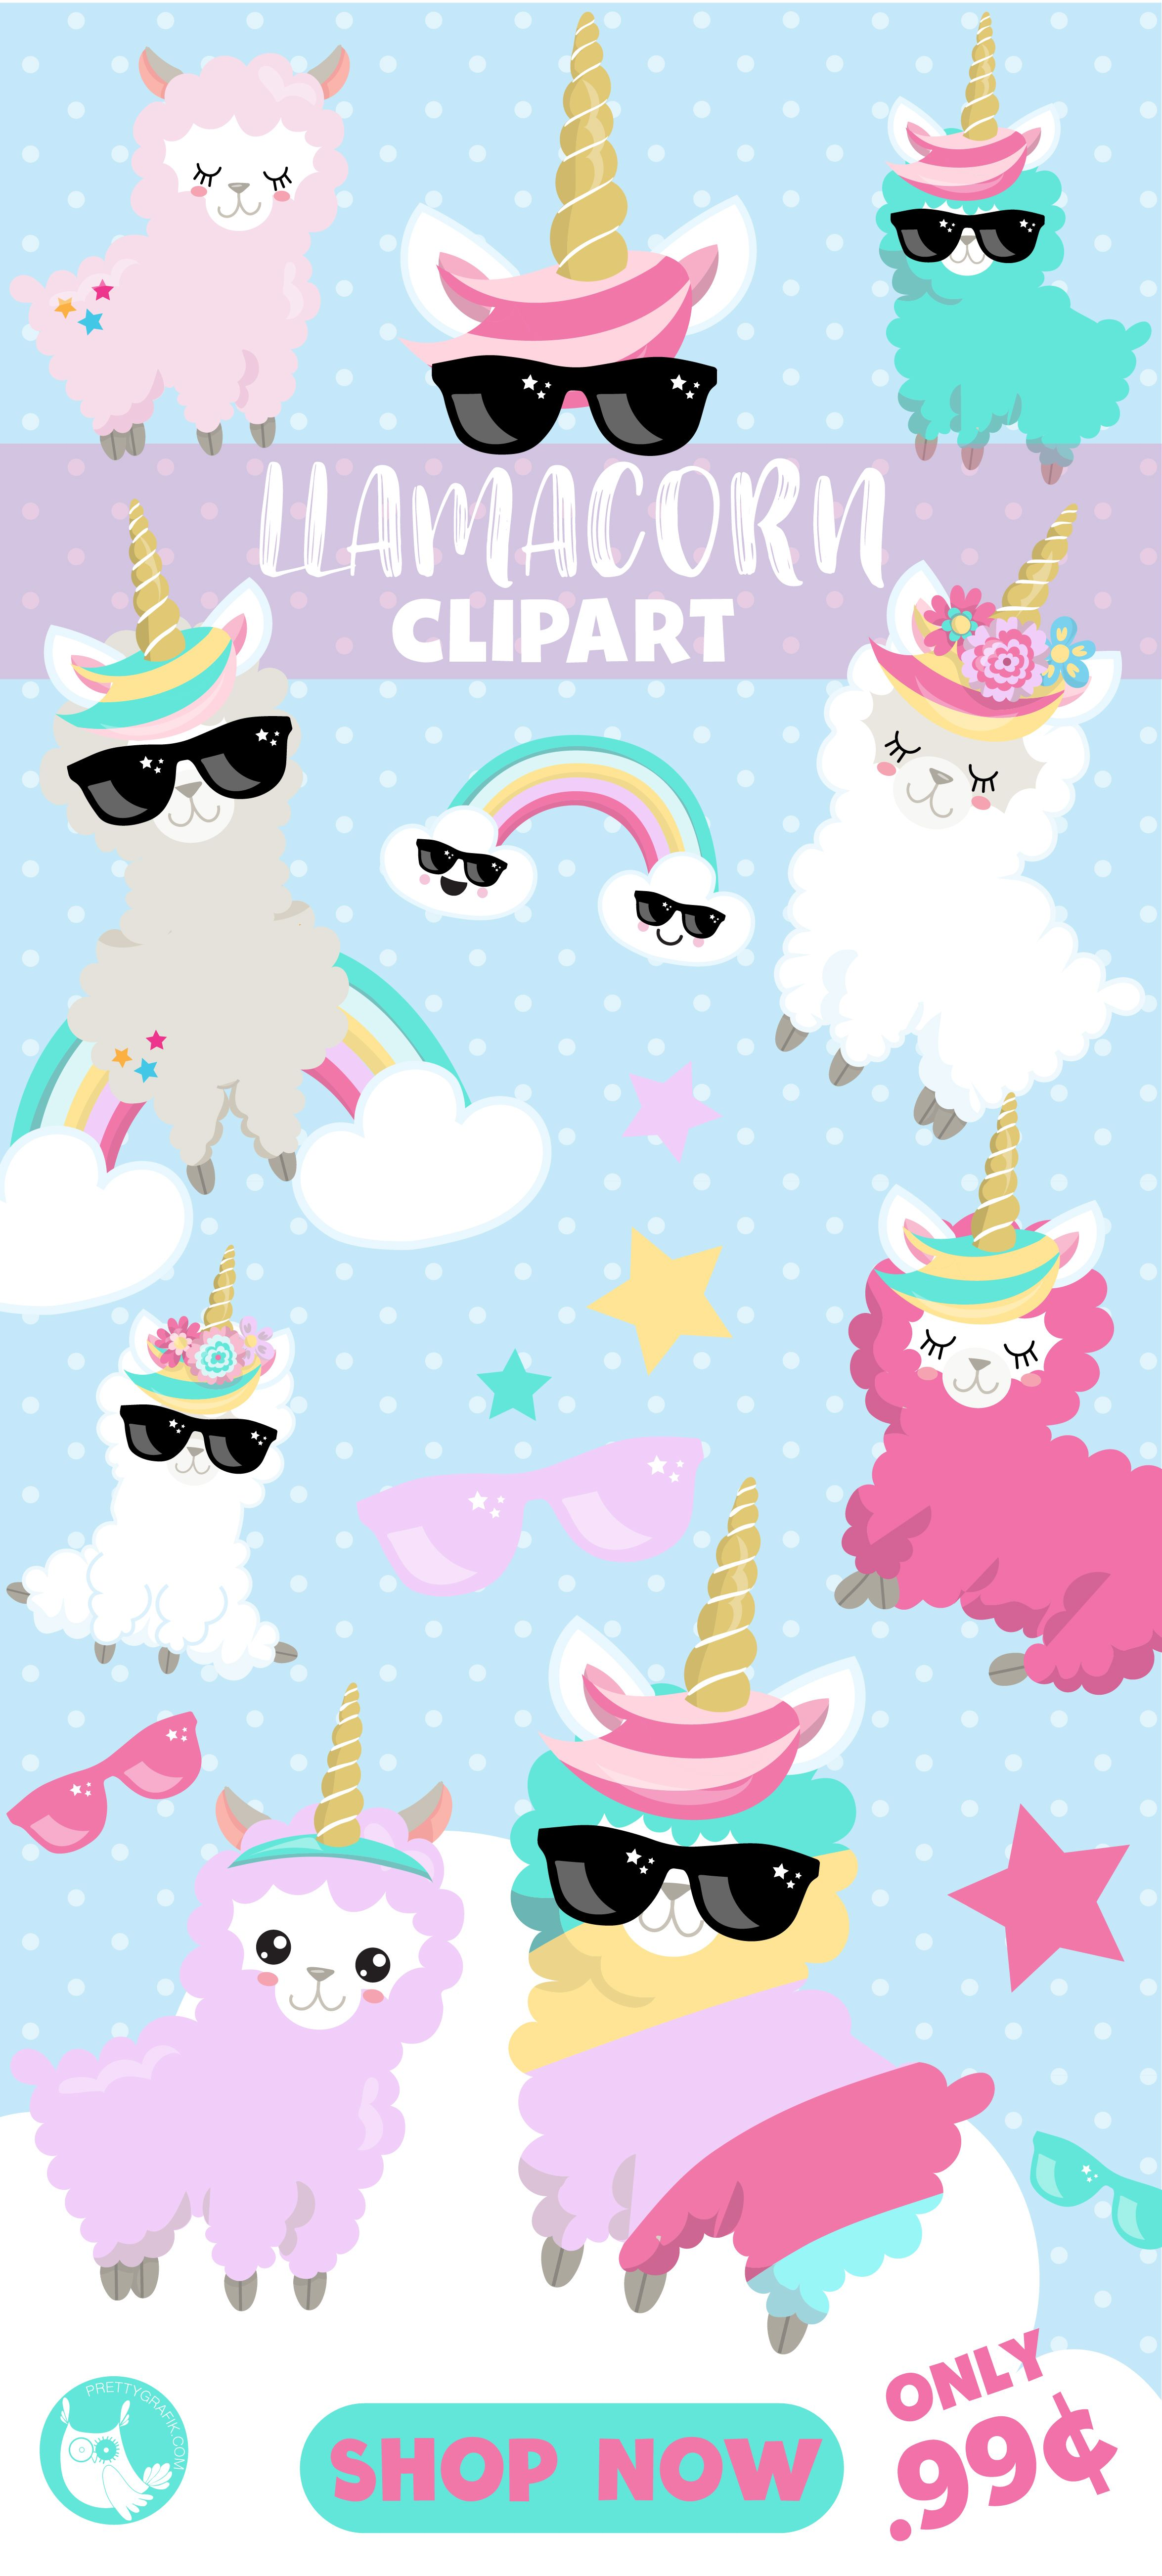 95cf0938b8bdcb Llamacorn llama clipart are only .99¢ and are great to use as party  decorations for a llama themed birthday party.